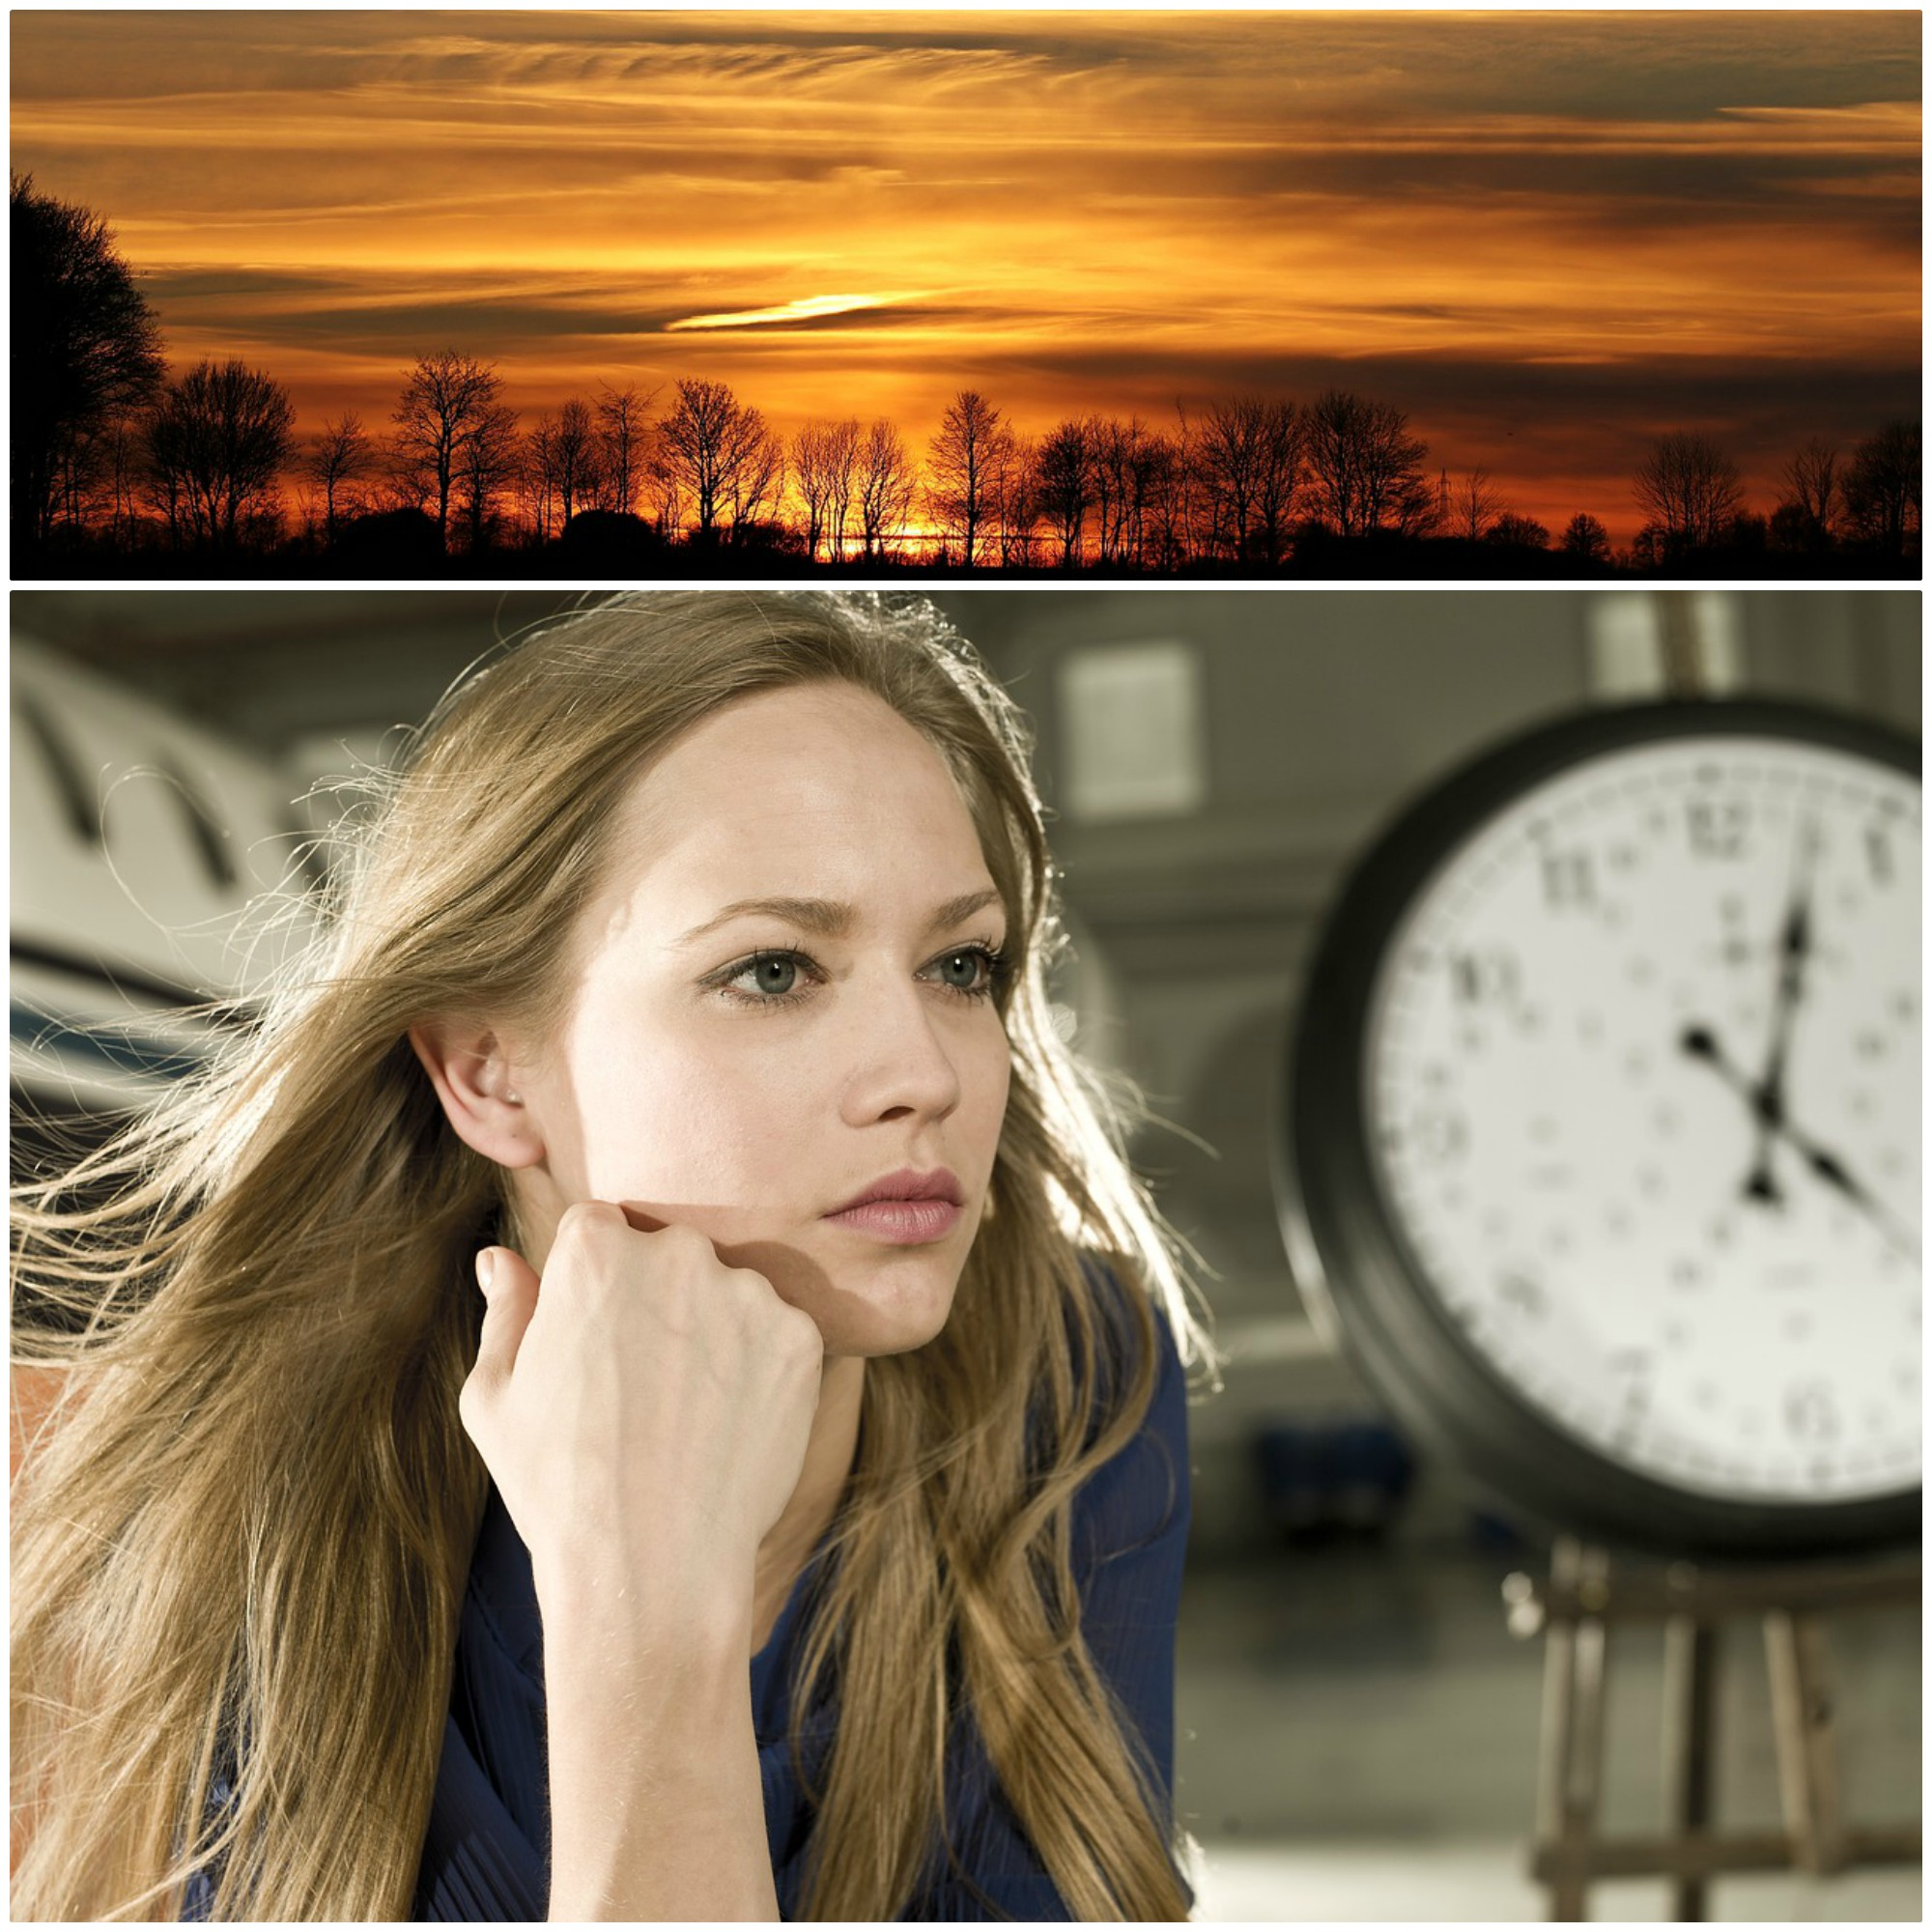 Sunrise and a blond long-haired woman next to a big clock.